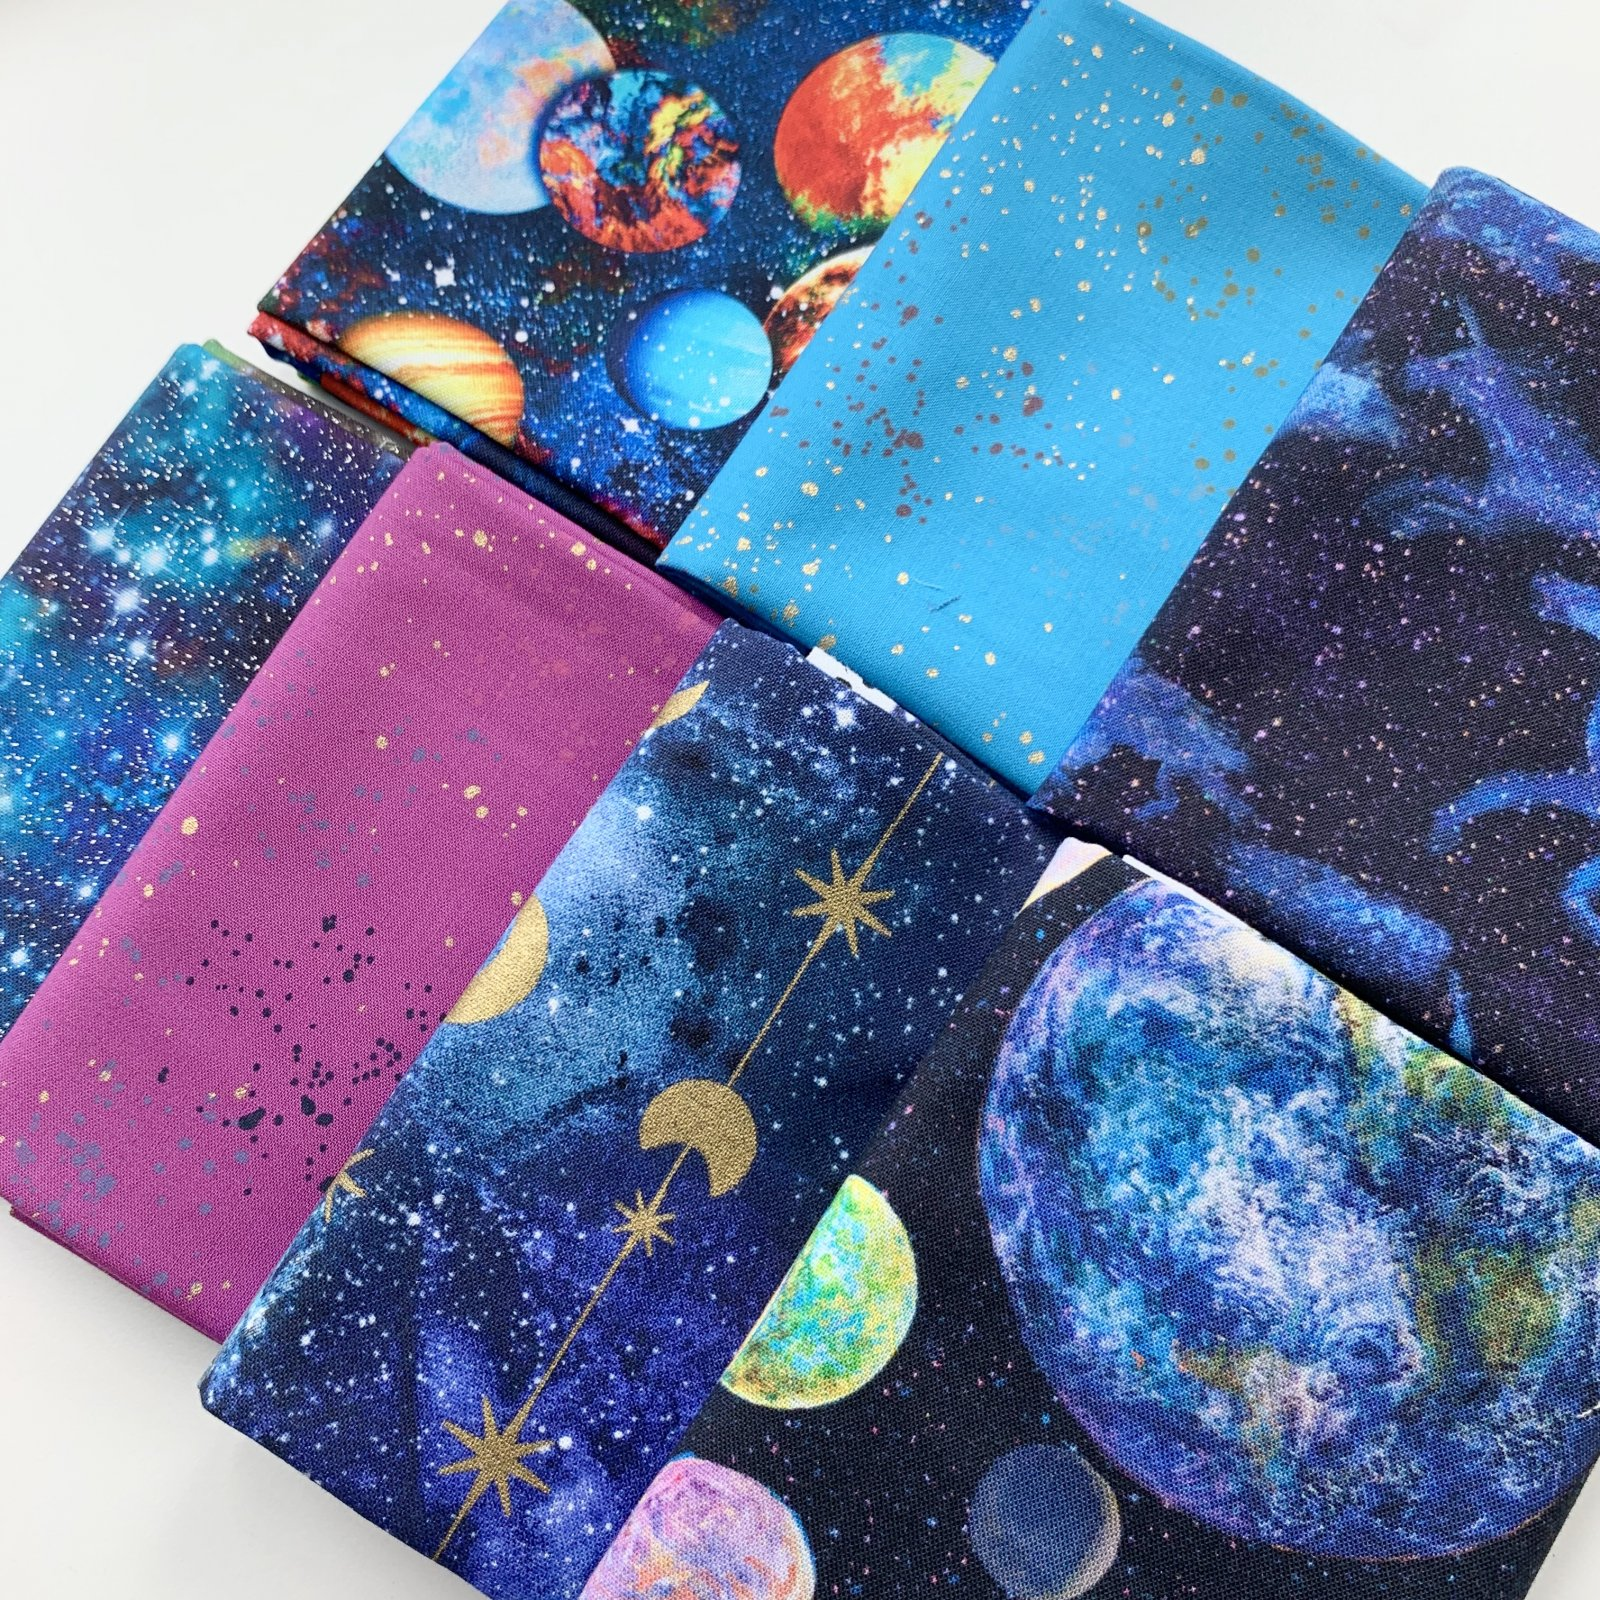 FQ Bundle - From Outer Space! - 7 Quilting Cotton Fat Quarters